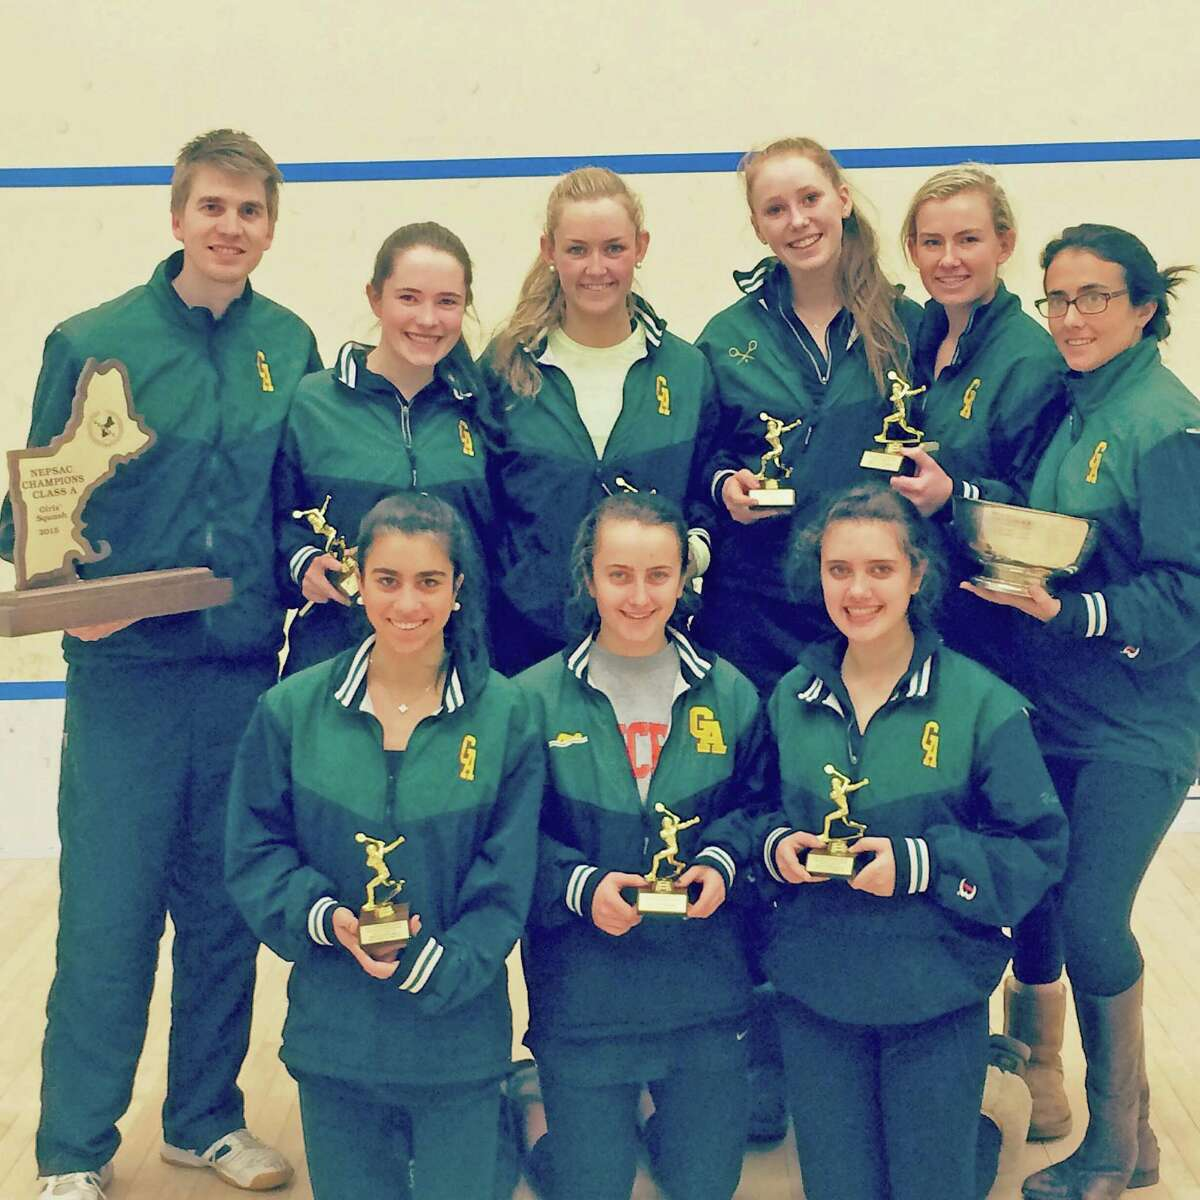 The Greenwich Academy squash team won the New England Interscholastic Squash Association Division A Championship Sunday at Choate Rosemary Hall. The victory gave the Gators their 17th New England title overall. Pictured, back row from left: Coach Luke Butterworth, Emma Mactaggart, Kayley Leonard, Haley Scott, Emme Leonard, Assistant Coach Izzy Spyrou. Front row from left: Isabelle Ezratty, Kate Feeley, Jessica Yacobucci.